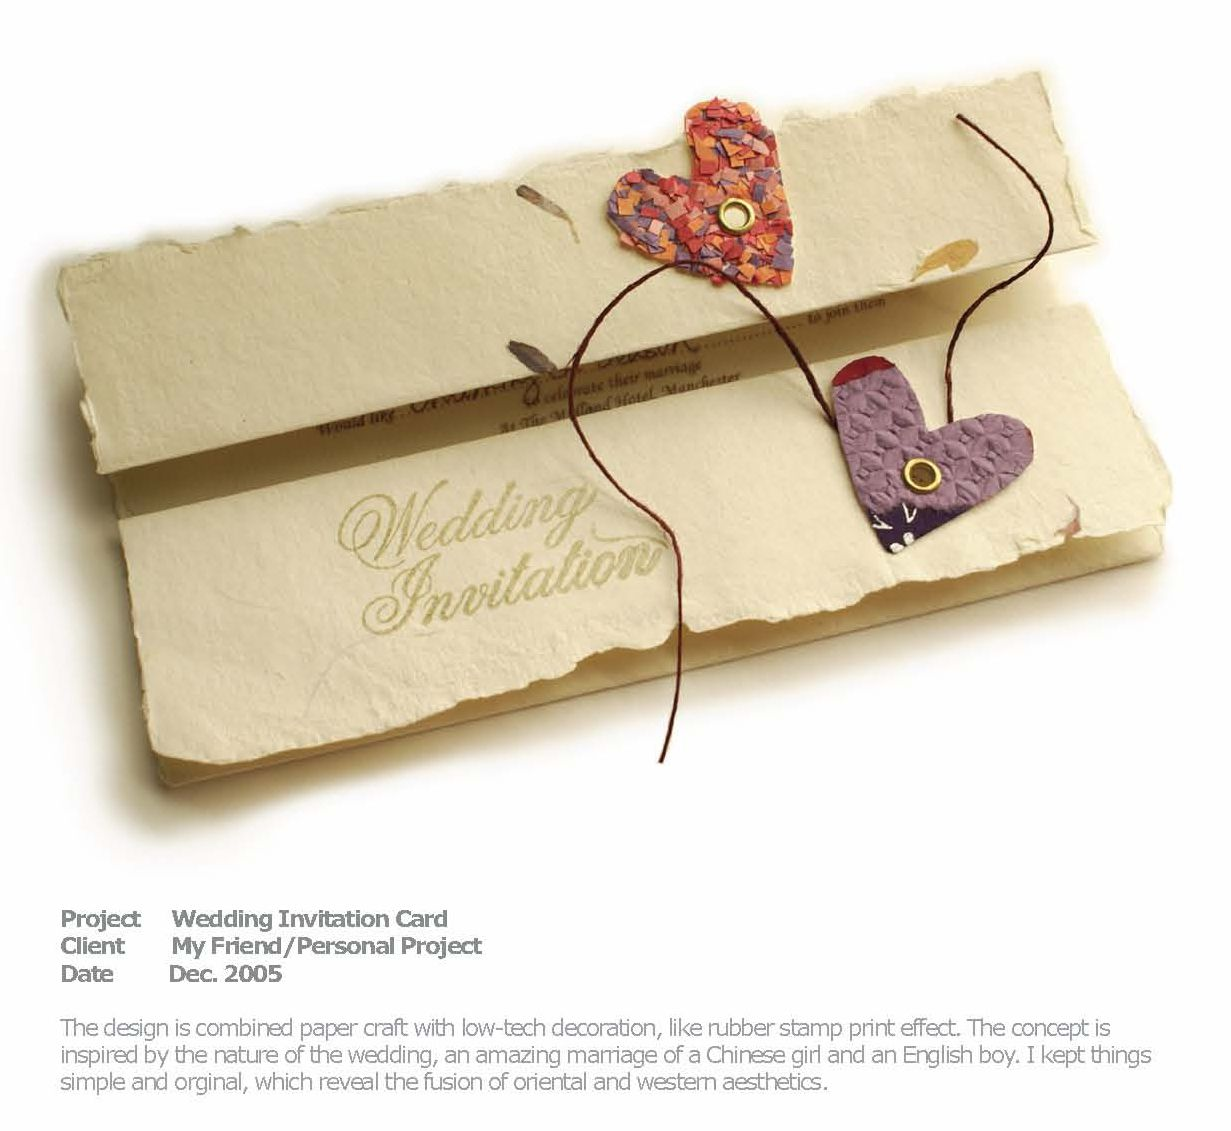 Creative Wedding Invitation Card Designs Invitations | Weddings ...